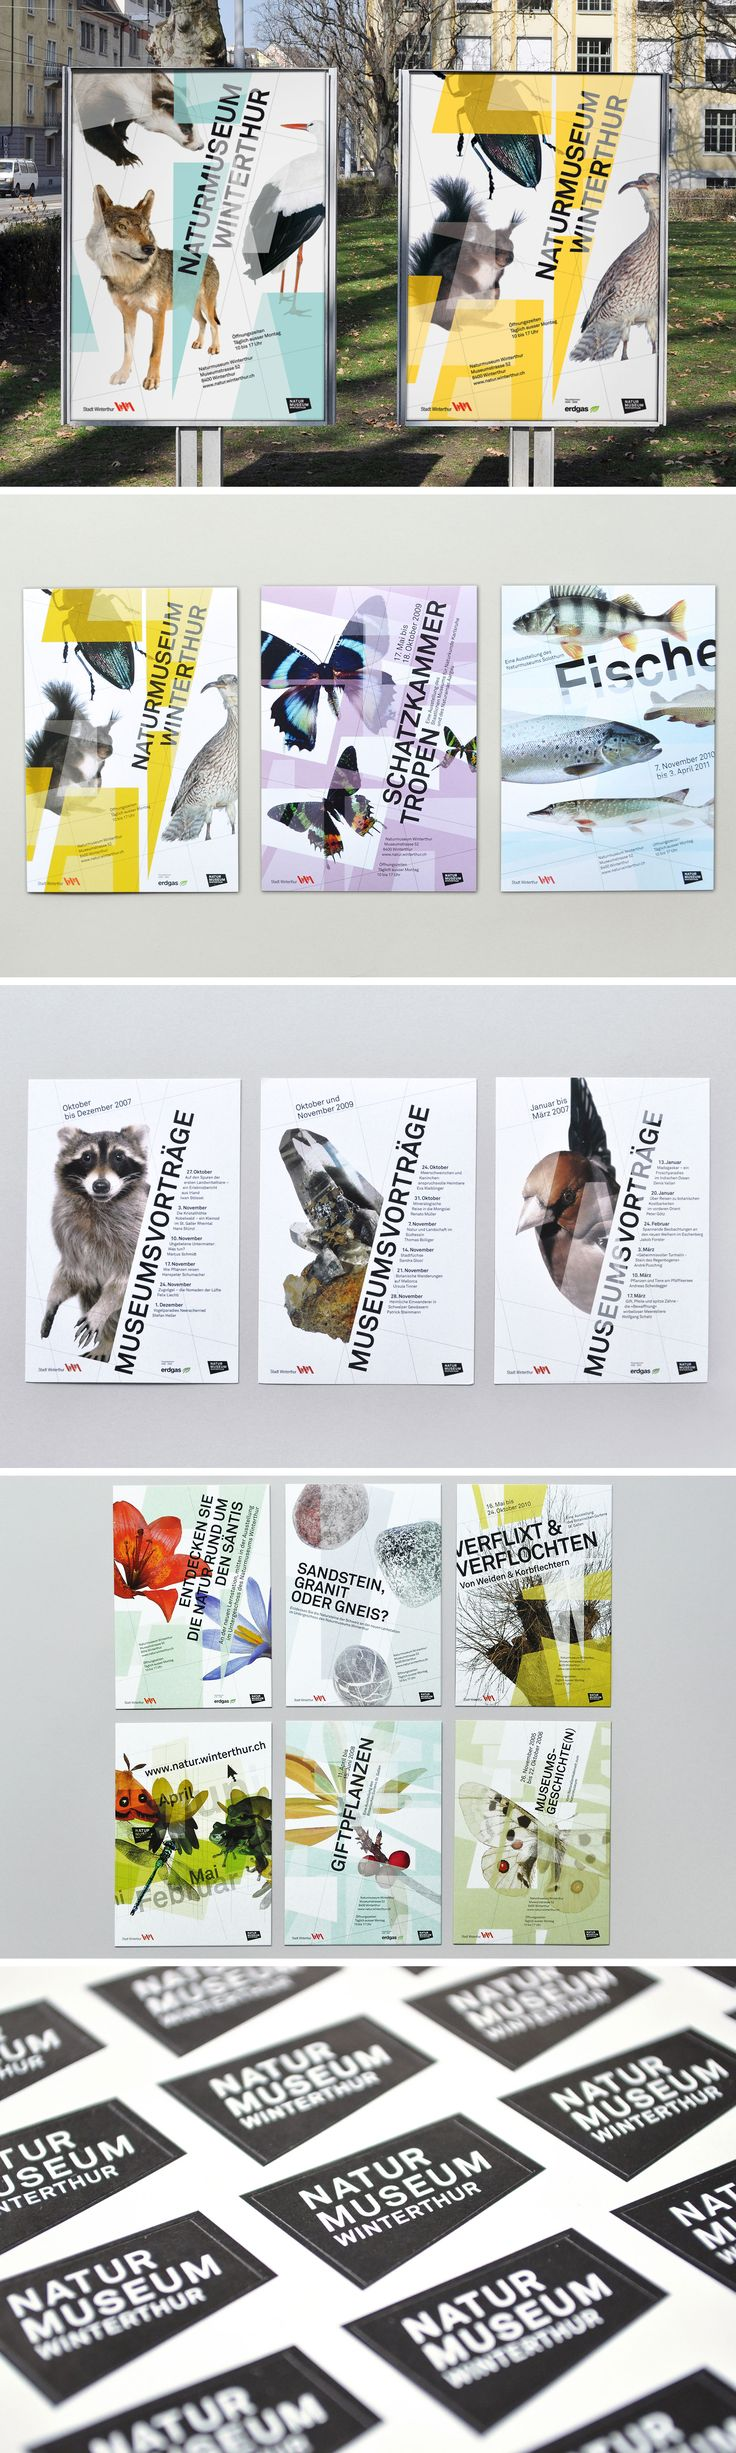 Printed matter and exhibition graphics for Naturmuseum Winterthur #exhibitiondesign #poster #flyer